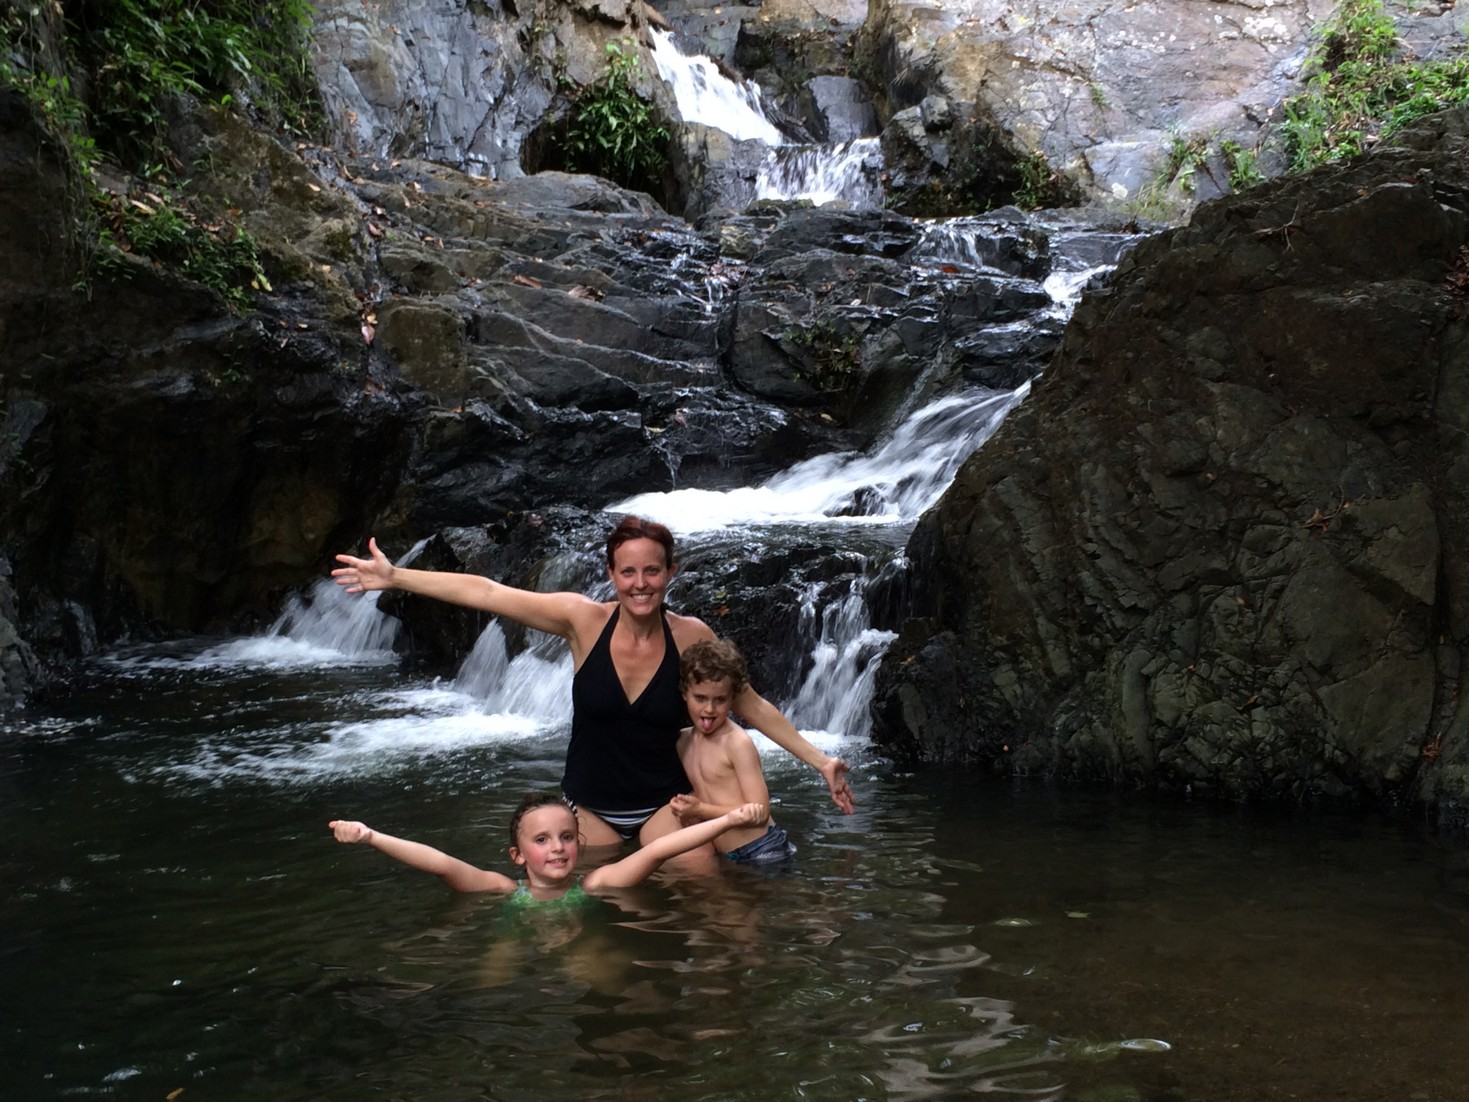 The hike was a little over a mileand it was hot. The dip in this natural waterfall was just what we needed. Since there was no one else anywhere near, Tag decided to swim in the buff shortly after this picture was taken.